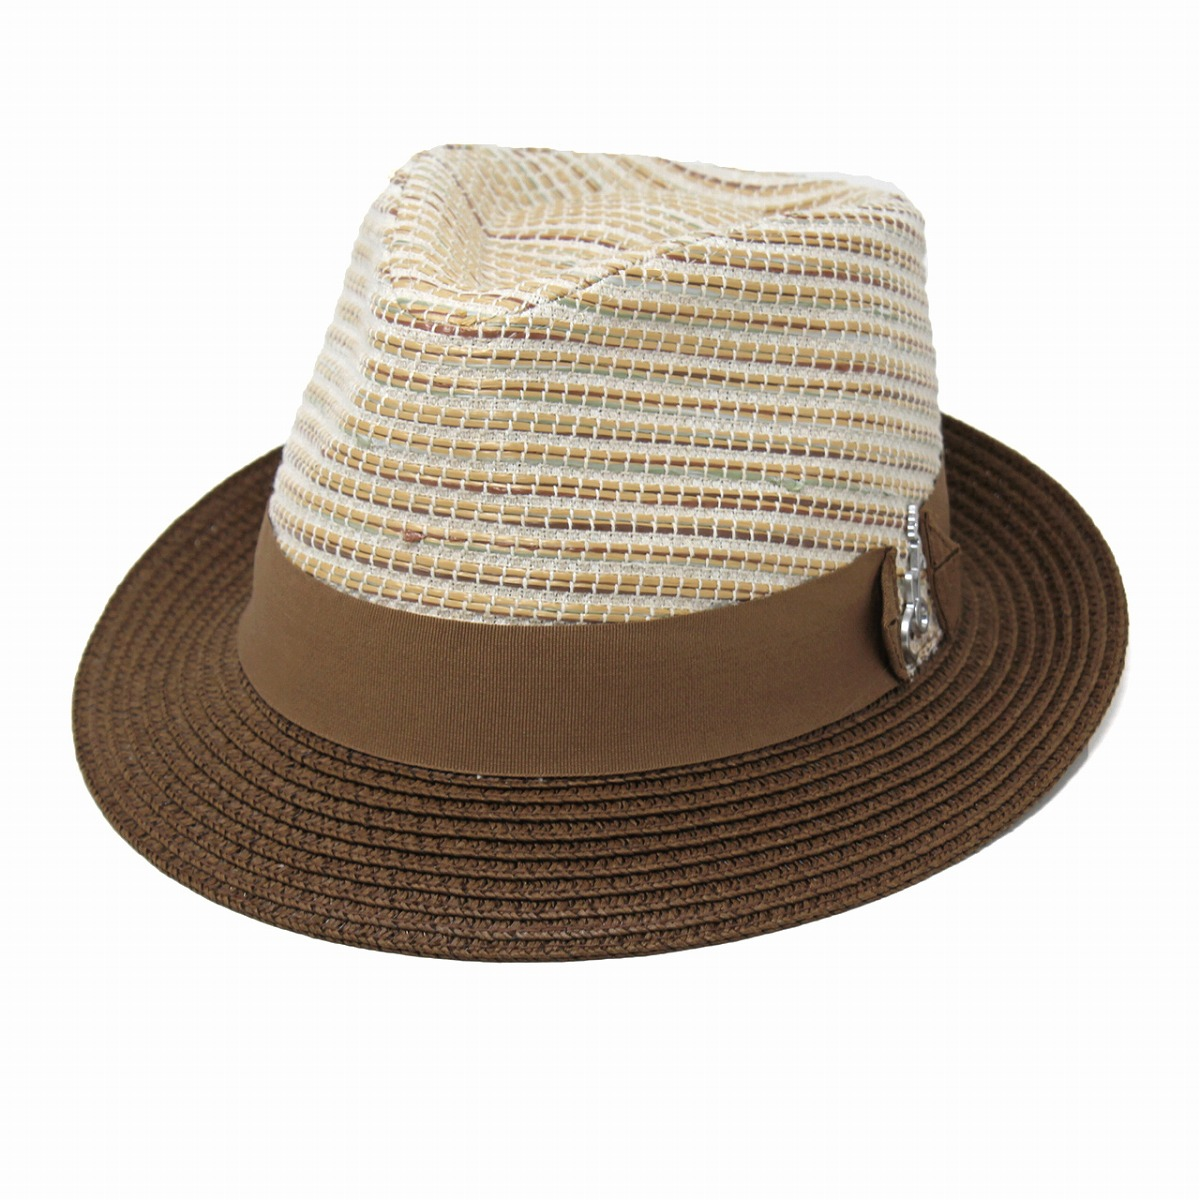 f34cfe75572 Straw hat men CARLOS SANTANA paper material refreshing soft felt hat hat  gentleman hat Carlos Santana hat Lady s soft felt hat guitar motif   tea  brown ...